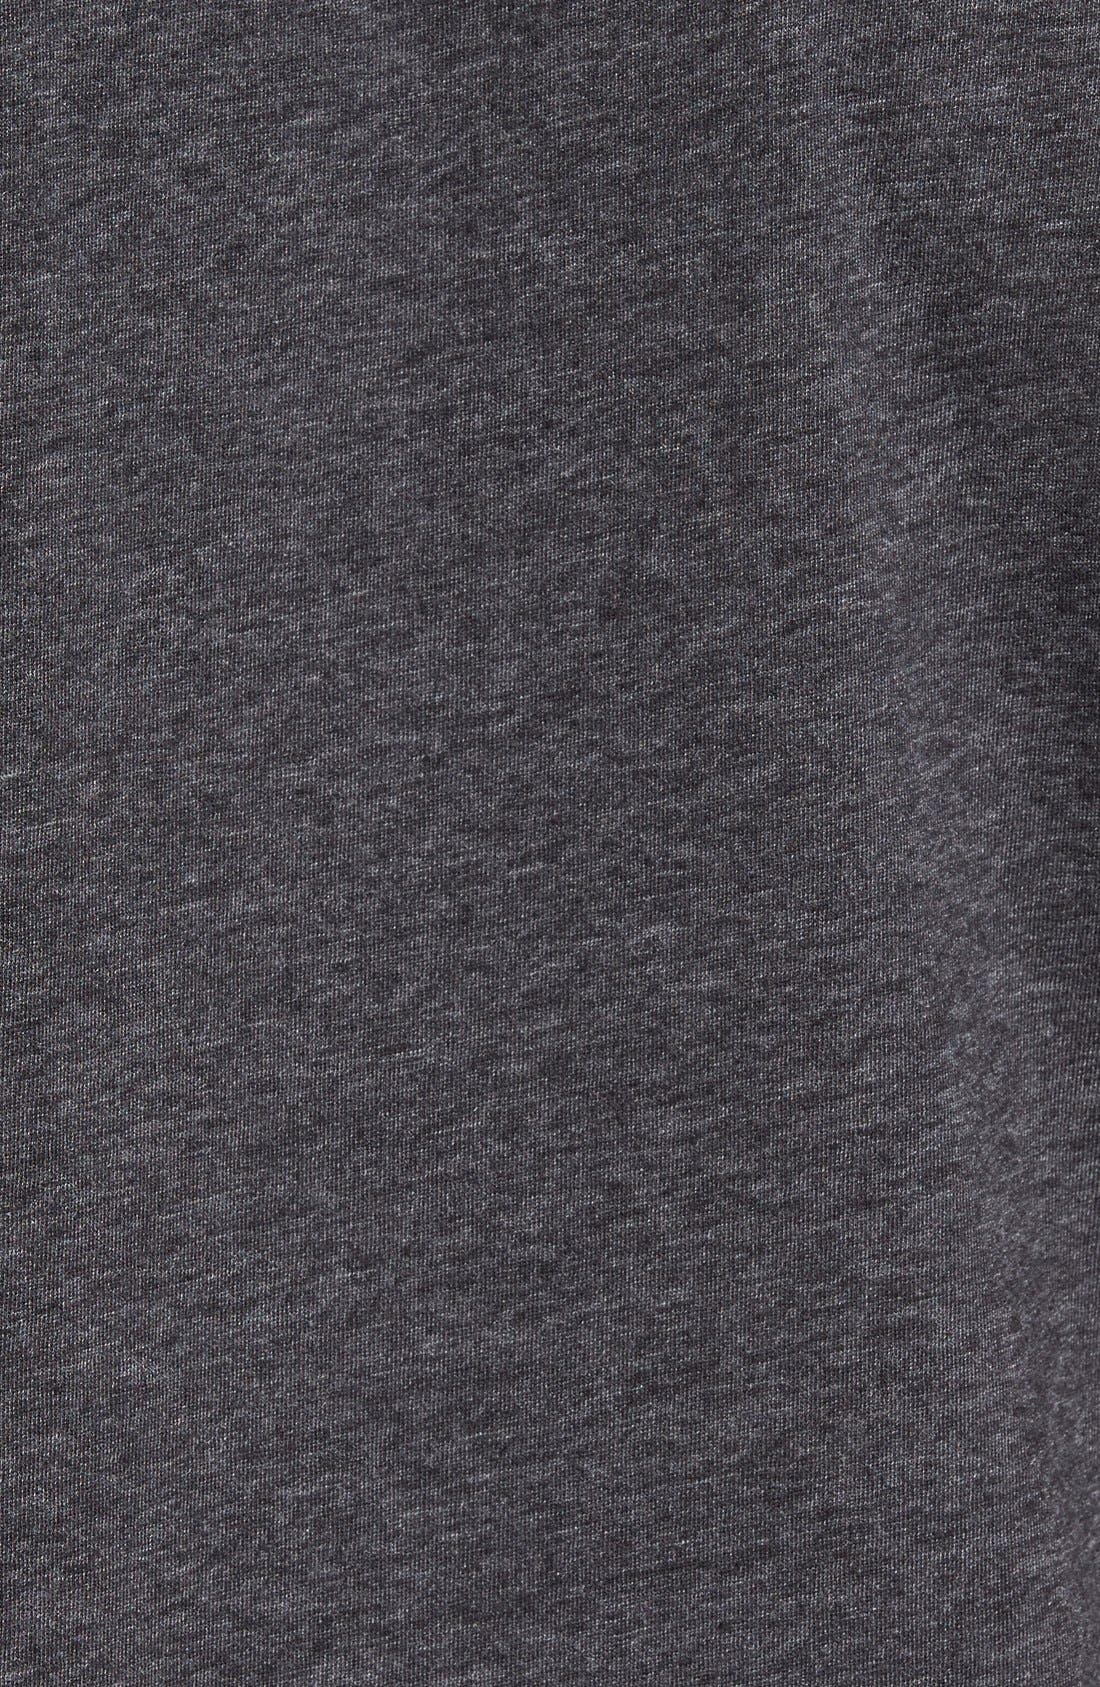 Recycled Cotton Blend T-Shirt,                             Alternate thumbnail 13, color,